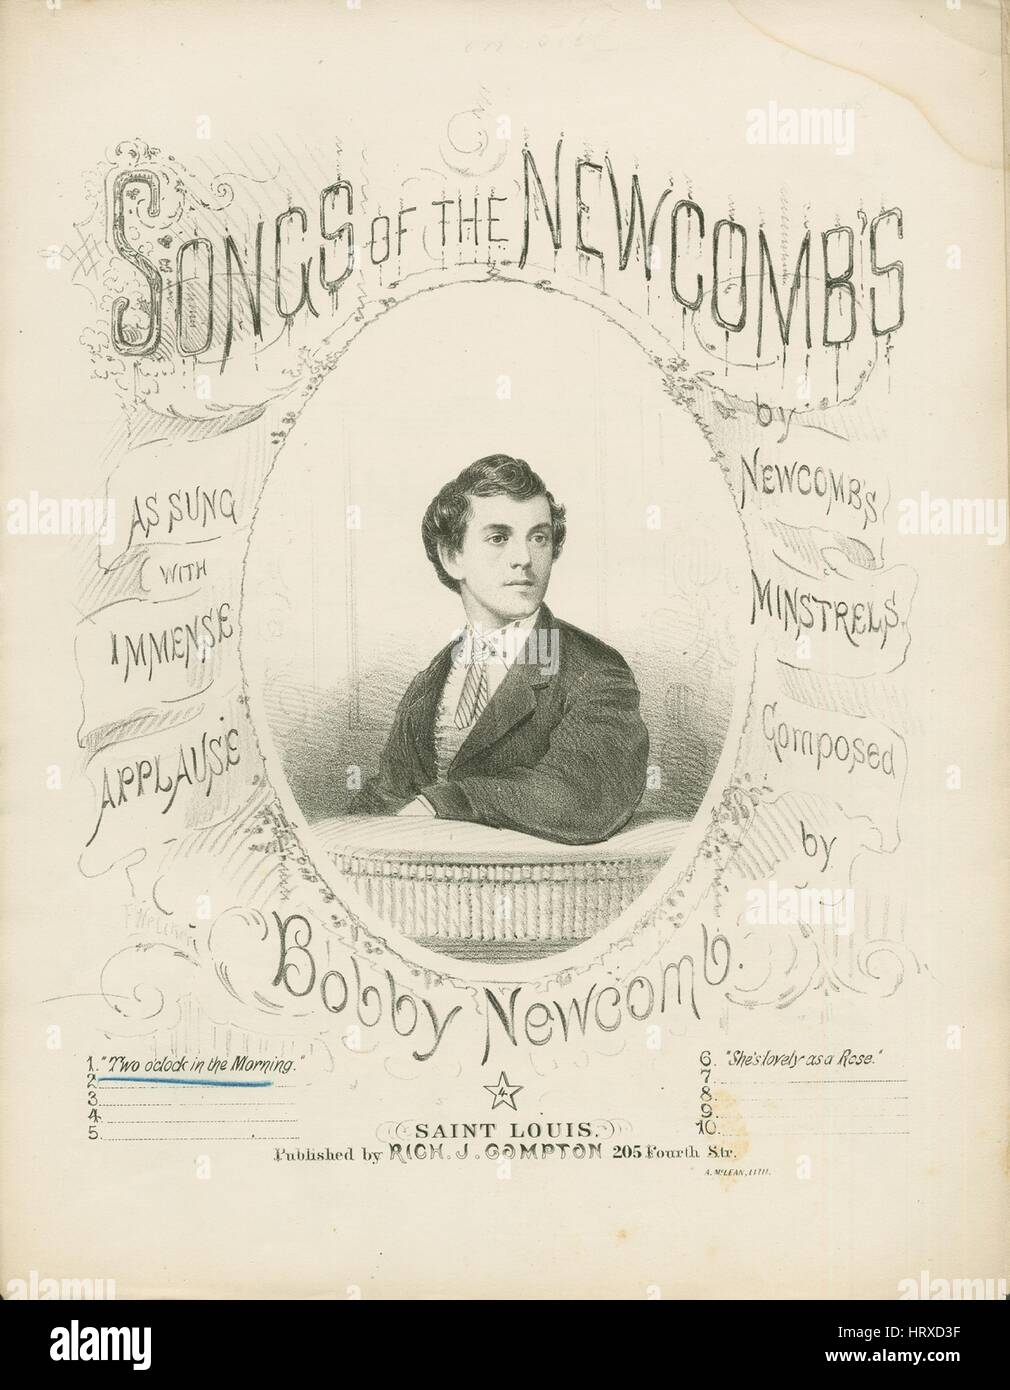 Sheet Music Cover Image Of The Song Two Oclock In The Morning Songs Of The Newcombs With Original Authorship Notes Reading Composed By Bobby Newcomb